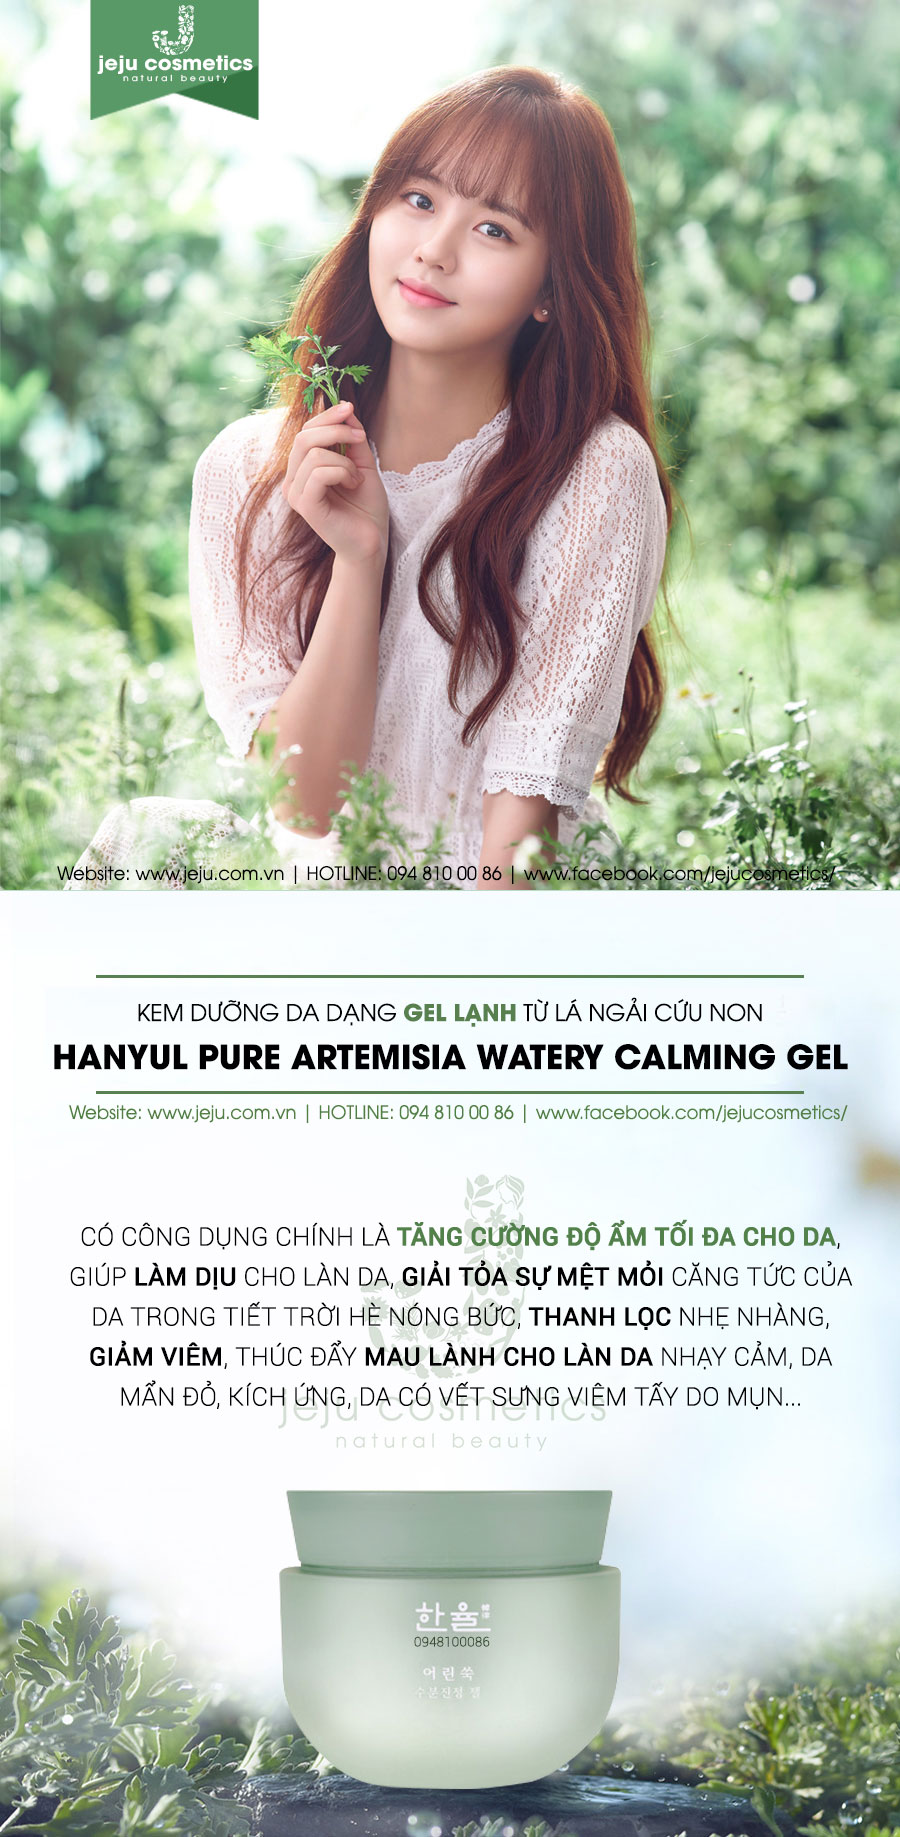 Hanyul Pure Artemisia Watery Calming Gel